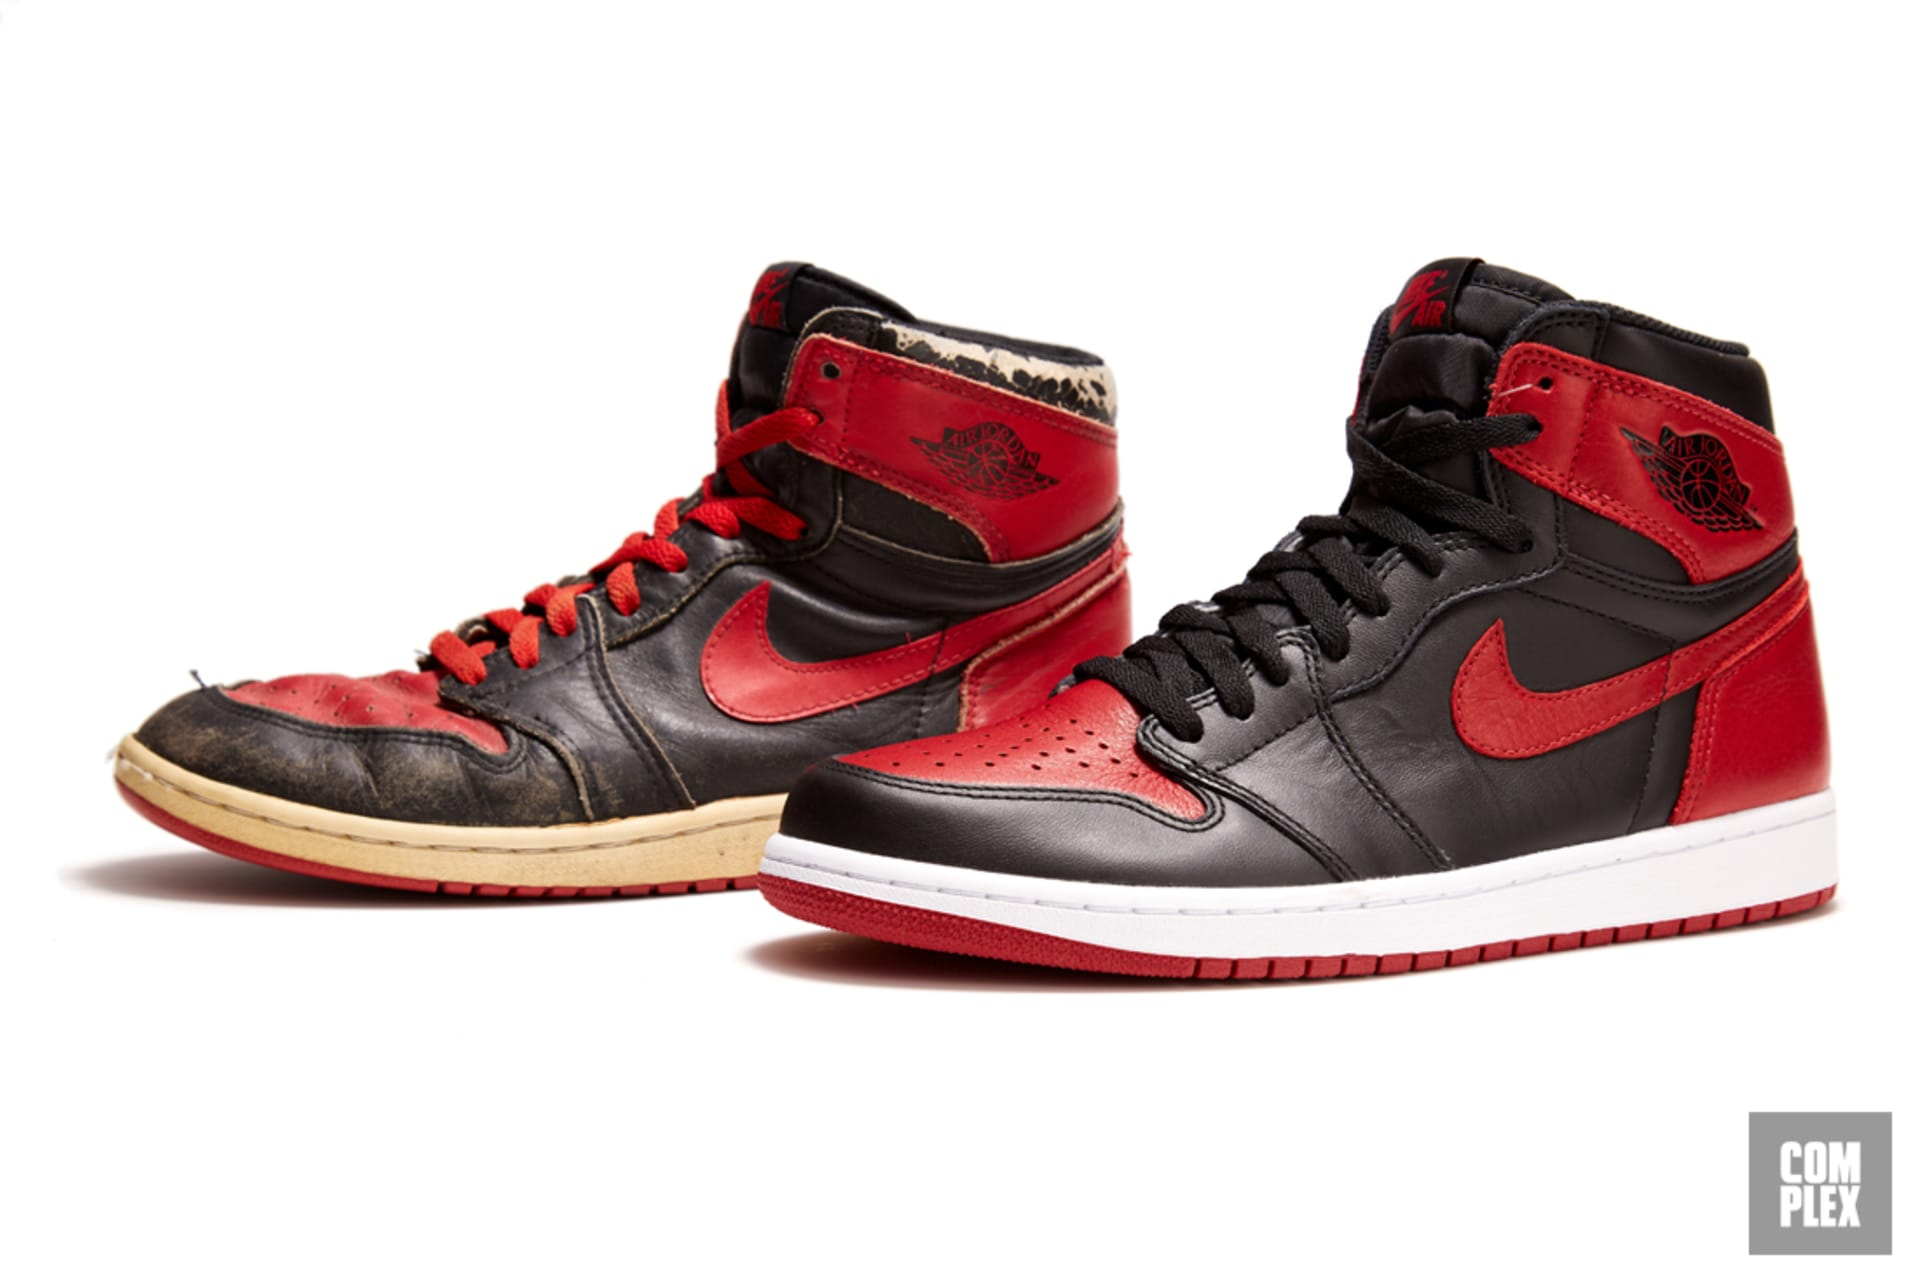 45ed266d72a0 The Evolution of the Black and Red Air Jordan 1